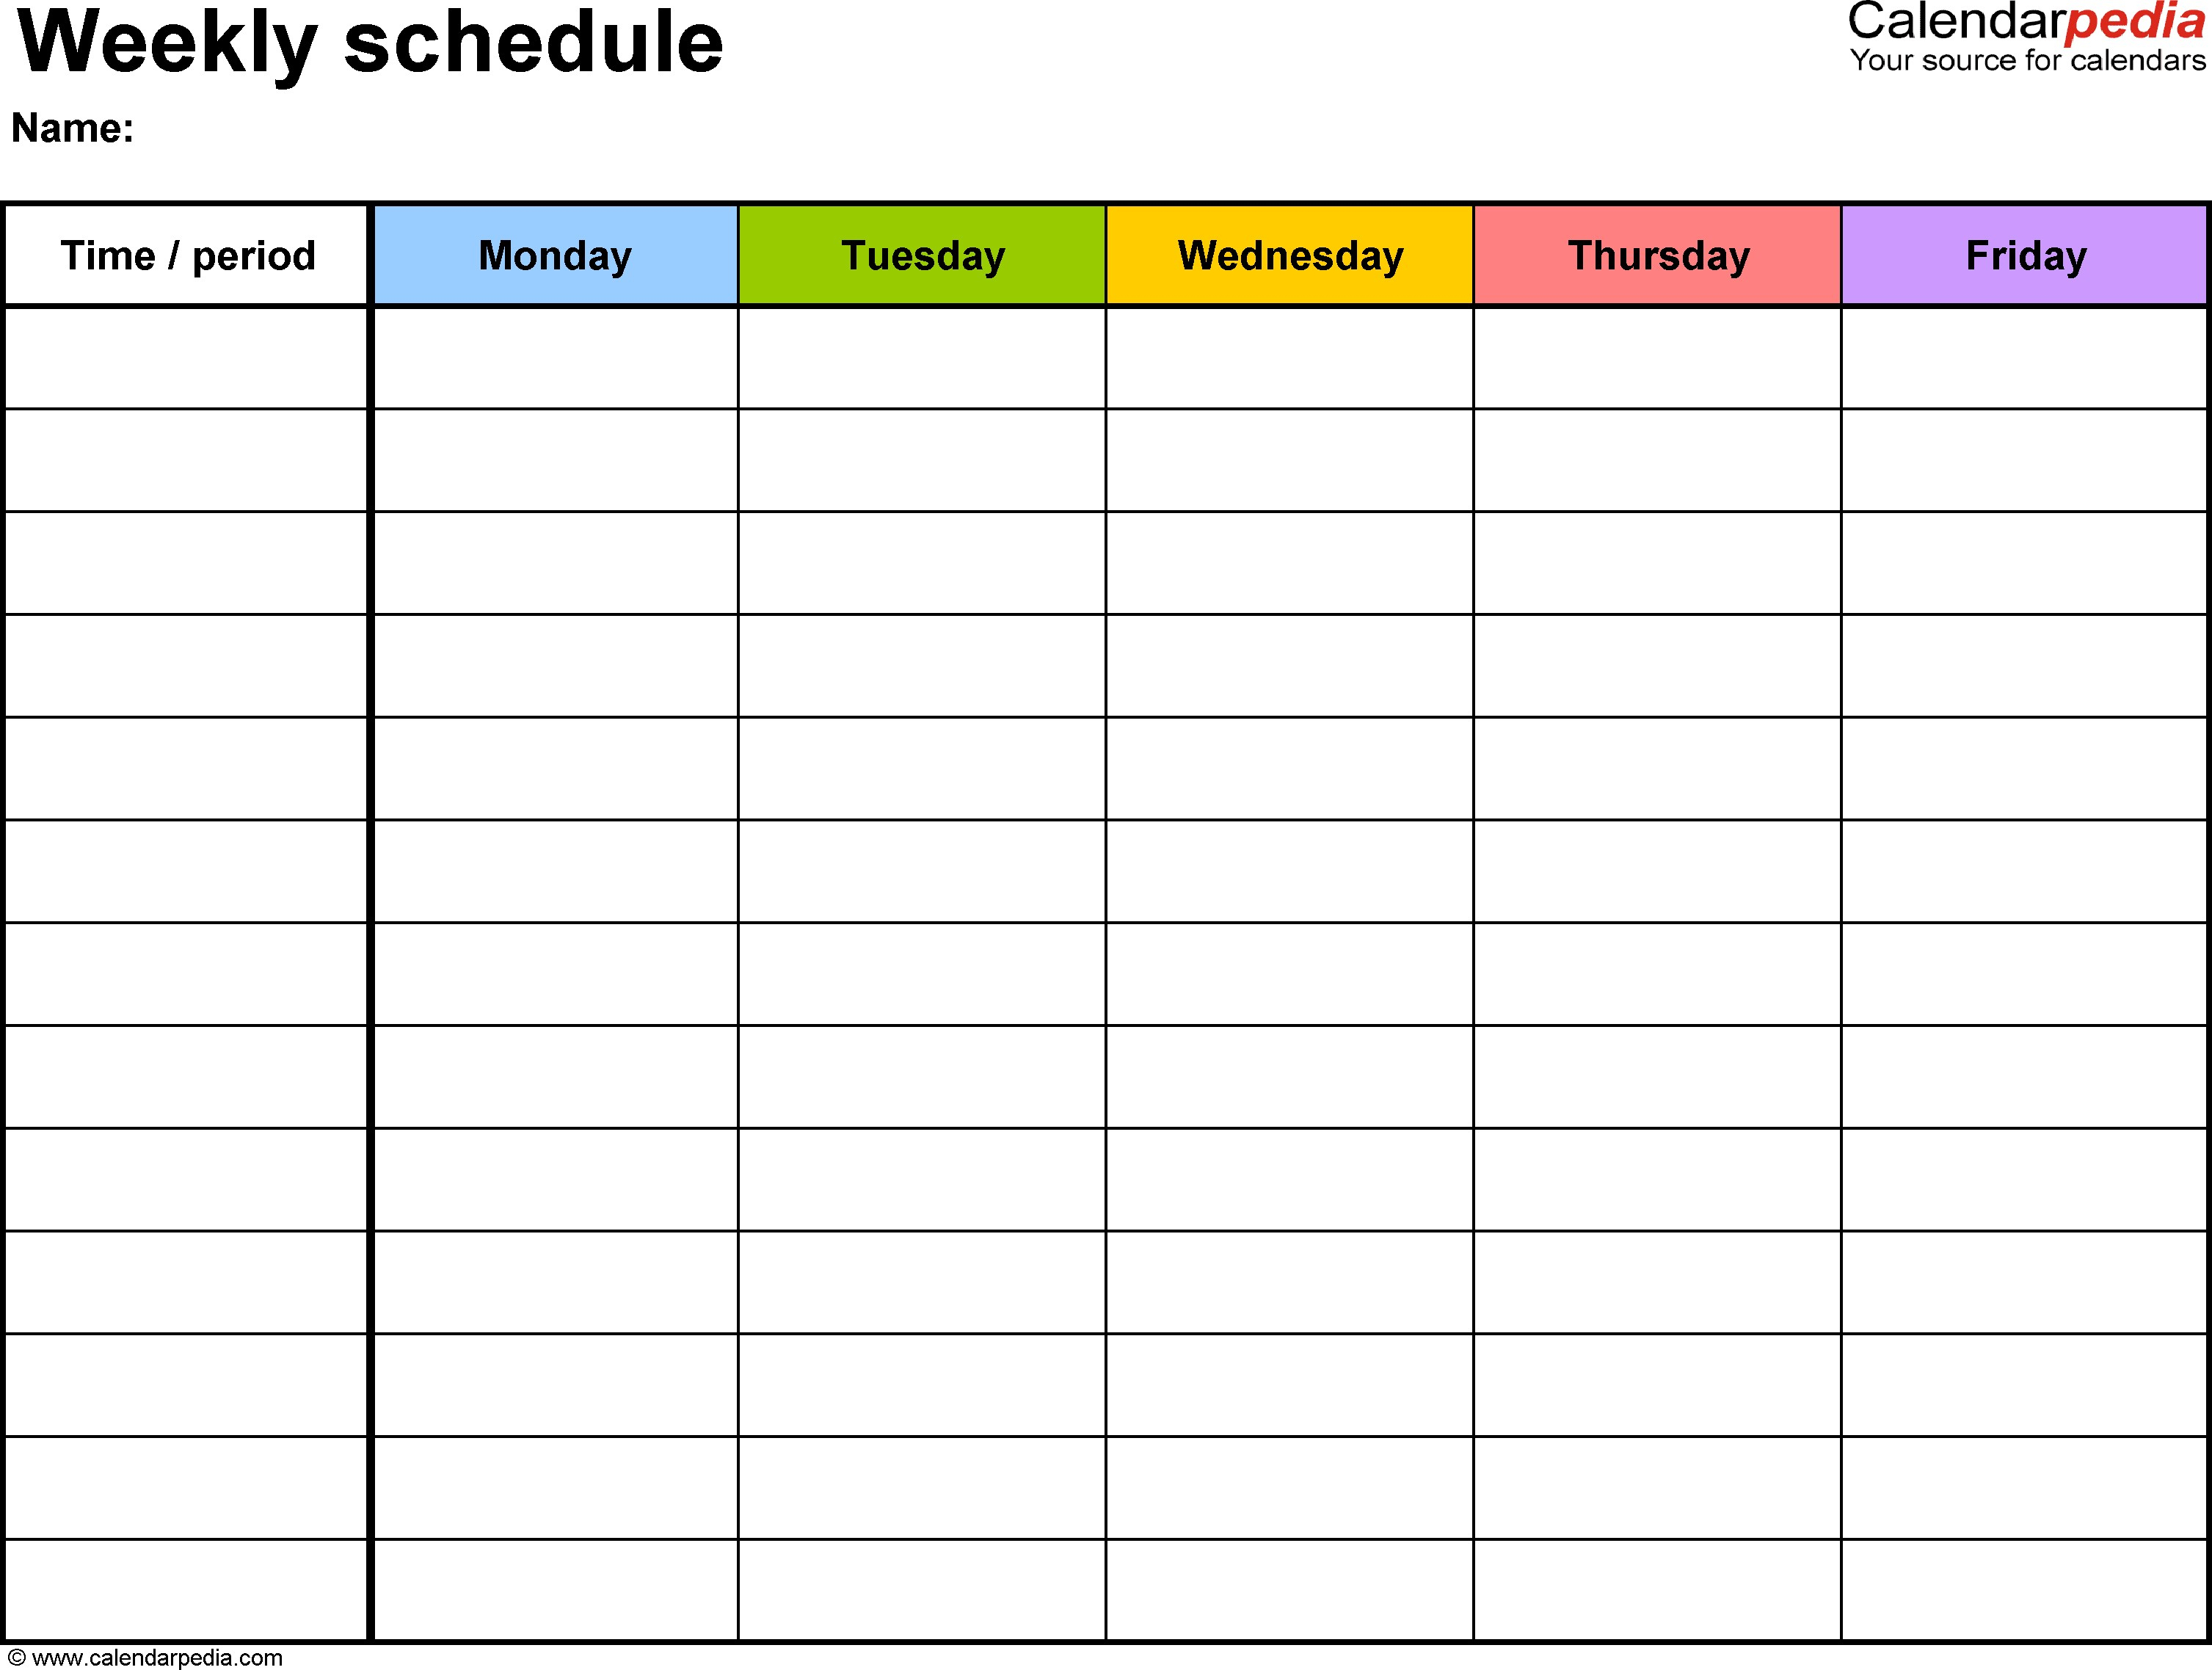 Weekly Calendar With Time Slots – Monthly Printable Calendar with regard to Weekly Schedule With Blank Time Slots